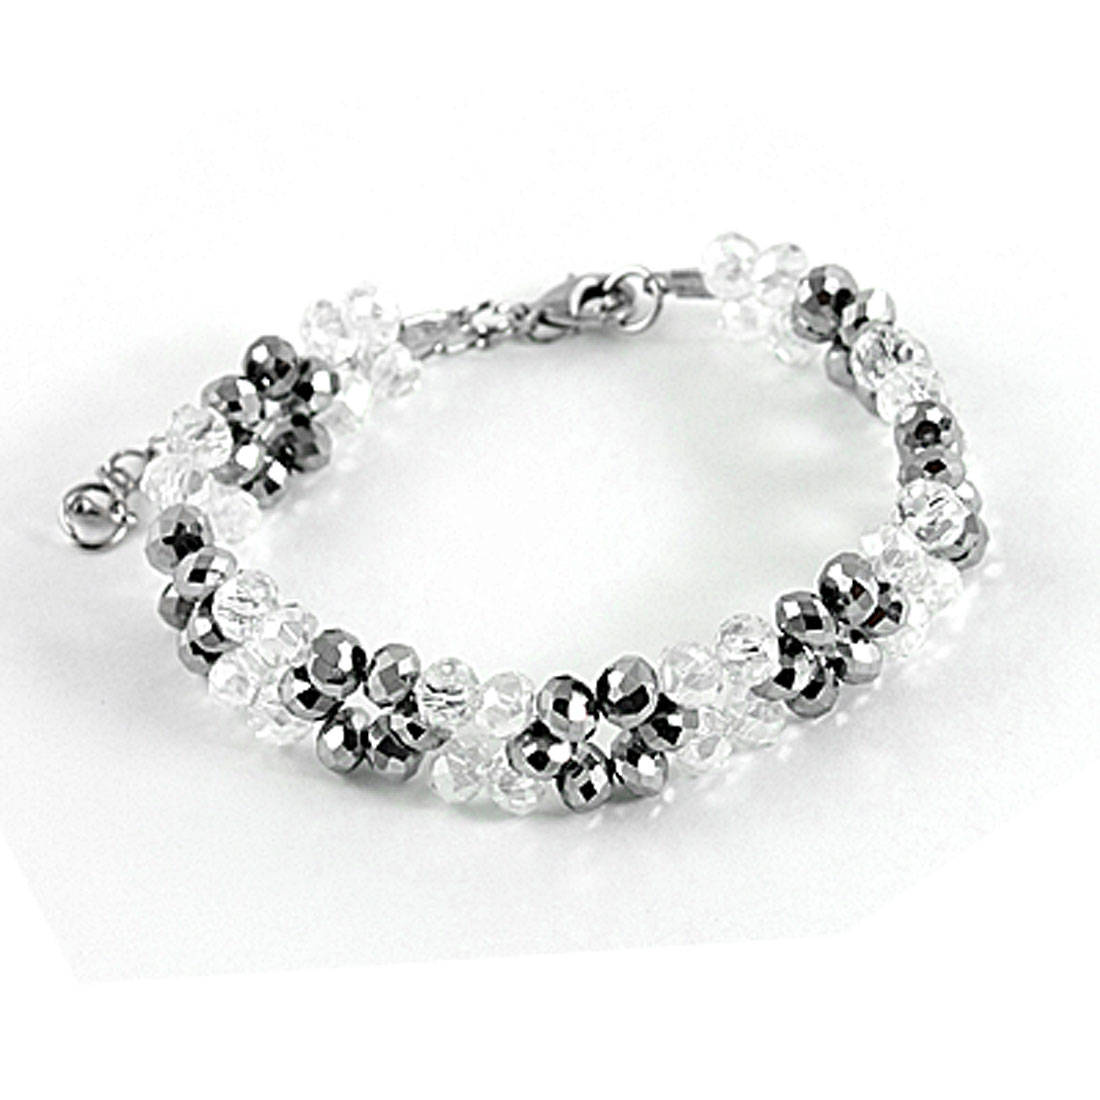 Faux Faceted Crystal Plastic Bracelet Gray Clear for Women